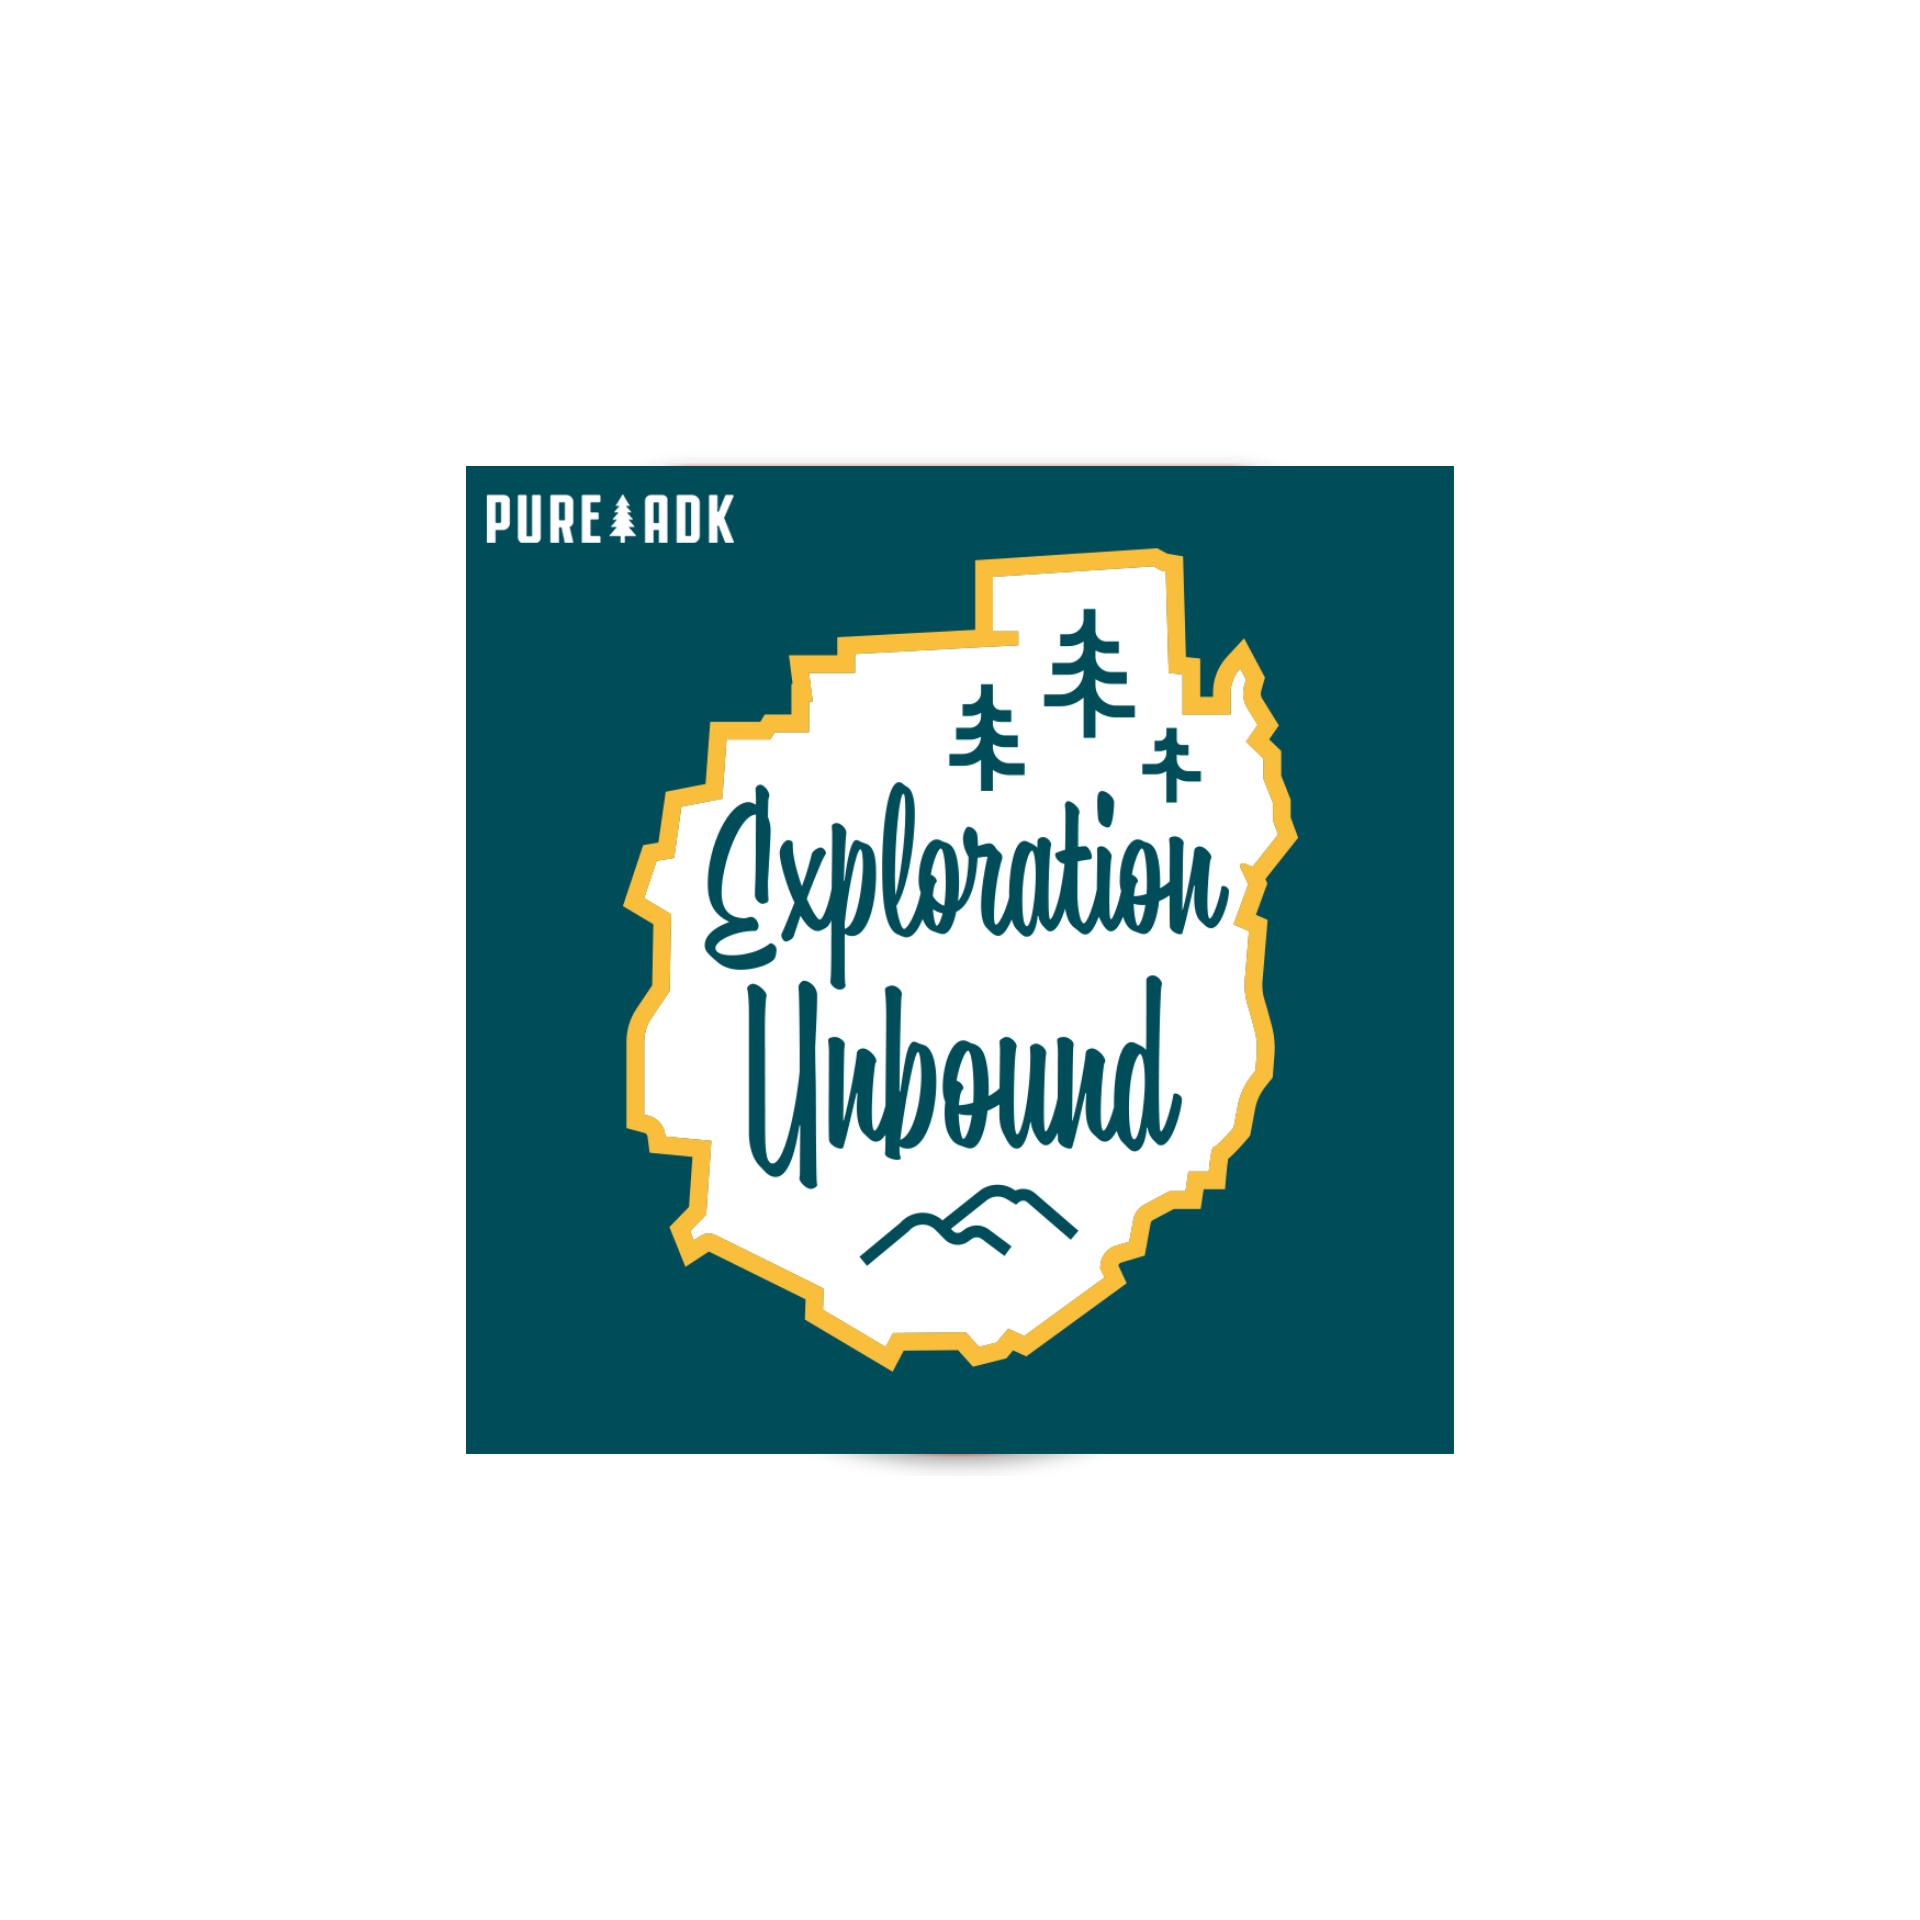 Exploration Unbound Sticker - Pure Adirondacks